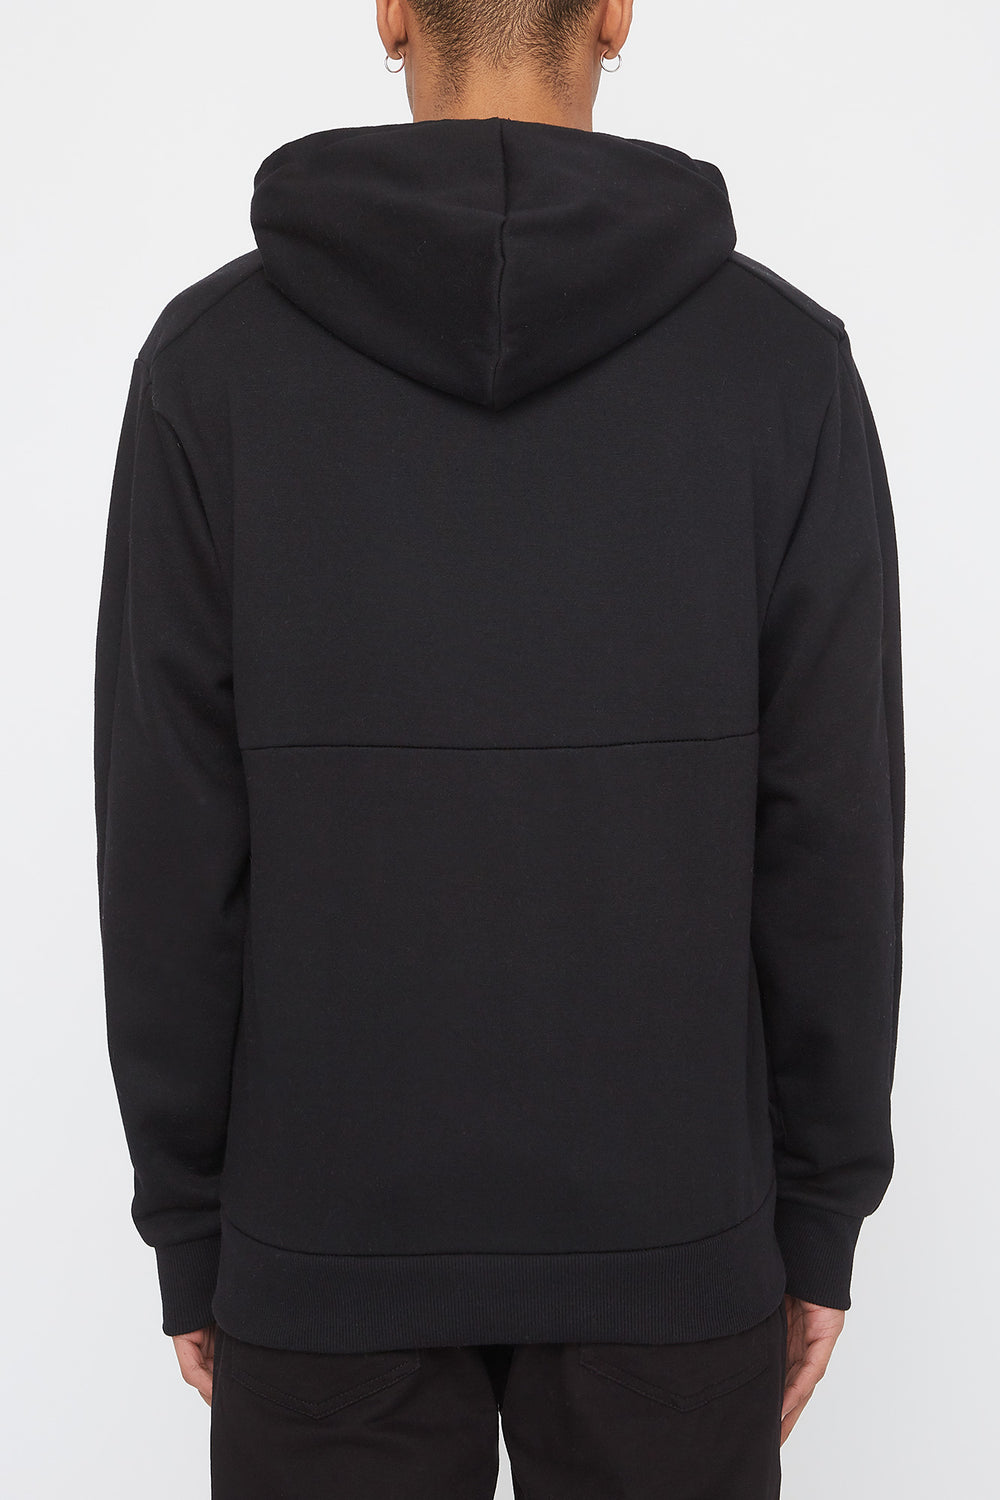 Zoo York Mens Embroidered Logo Hoodie Black